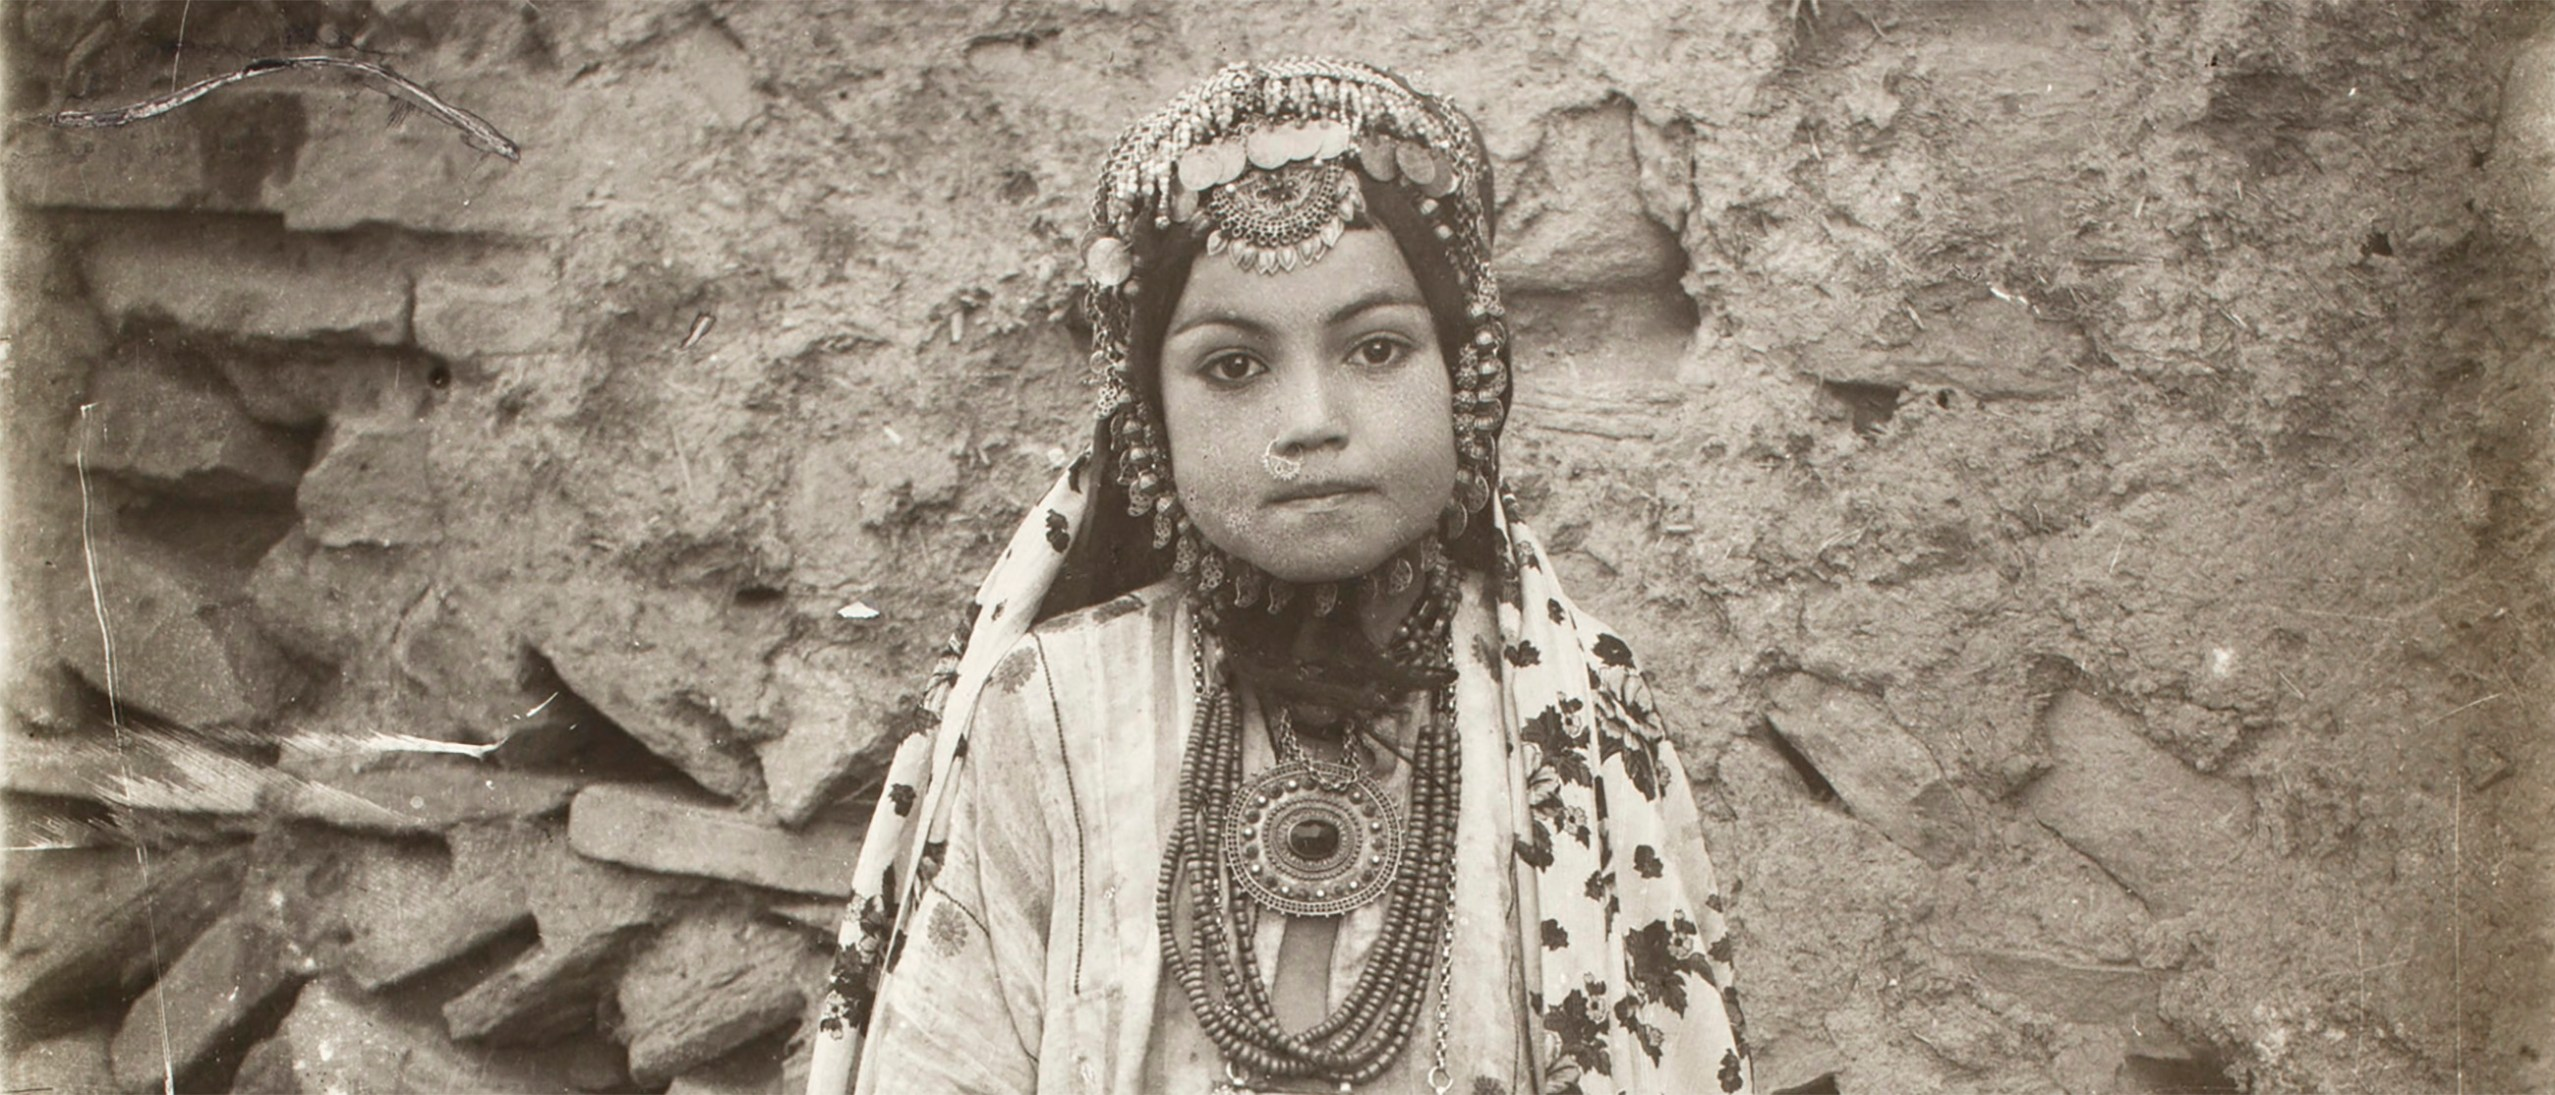 Photo, Portrait of Jewish Girl in Elaborate Costume; Sevruguin, Antoin, 1870s-1928, b&w ; 17.5 cm. x 23.3 cm.; FSA_A.4_2.12.Up.55